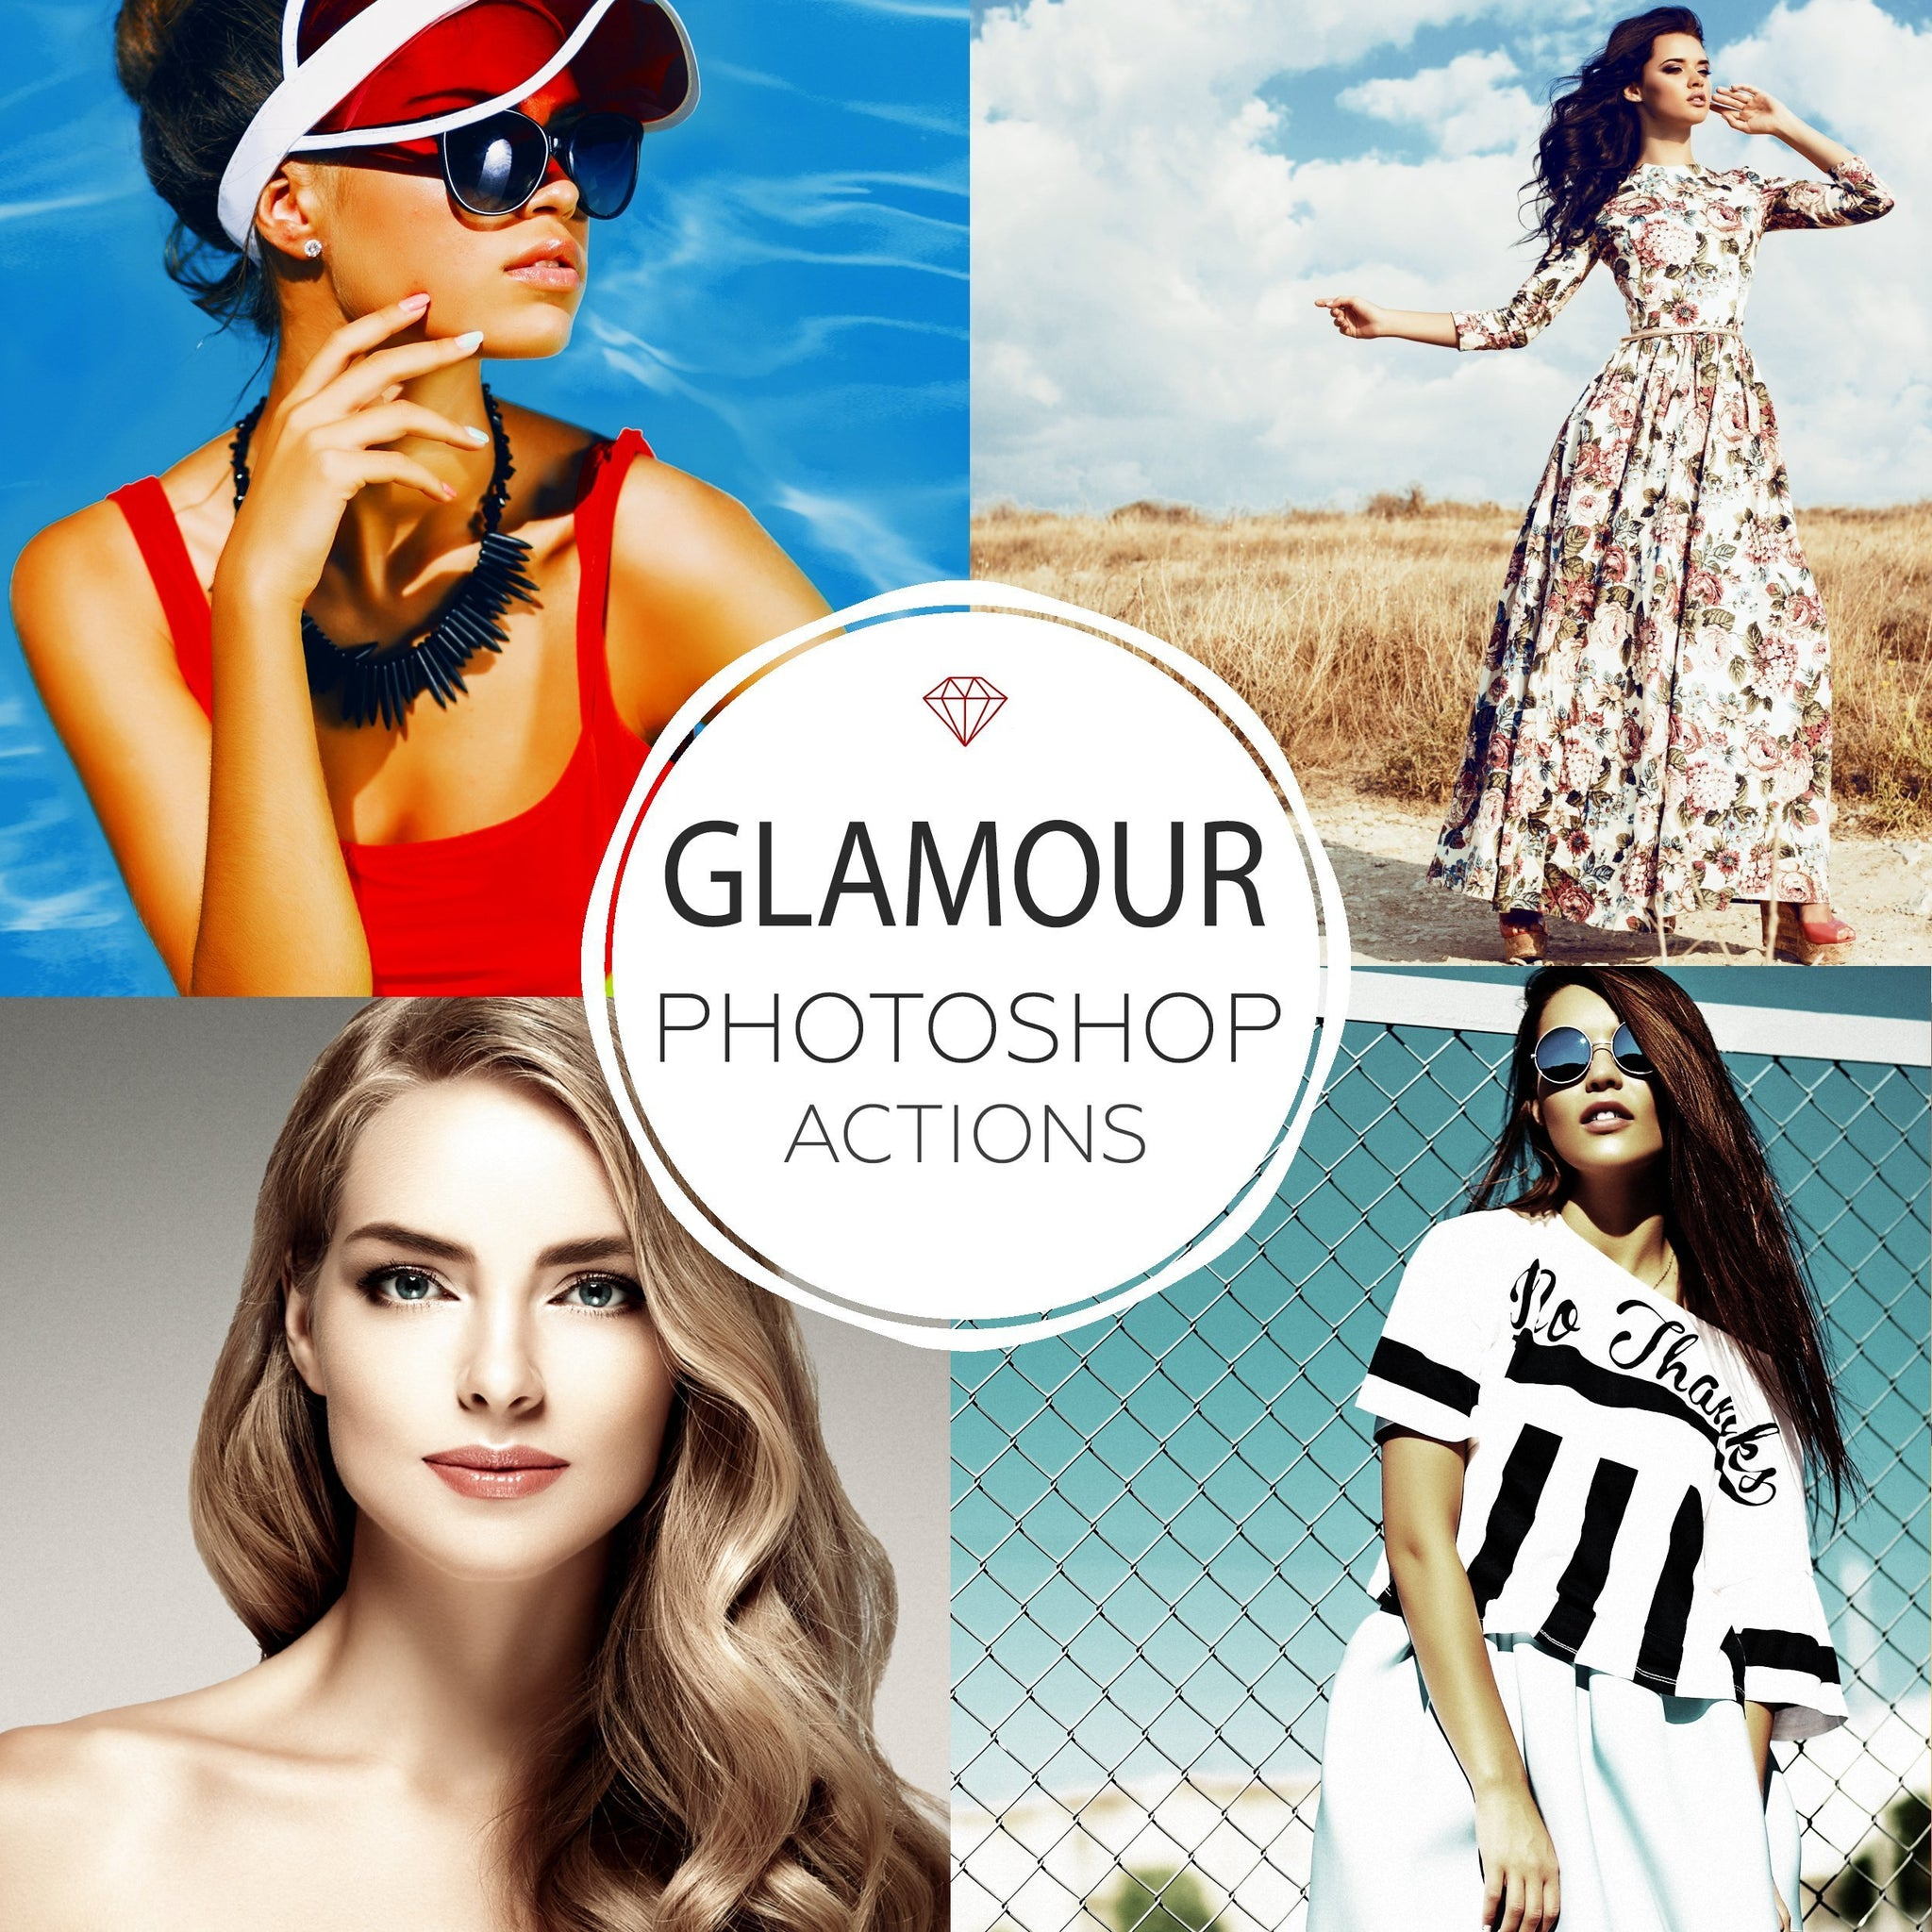 Glamour - Photoshop Actions